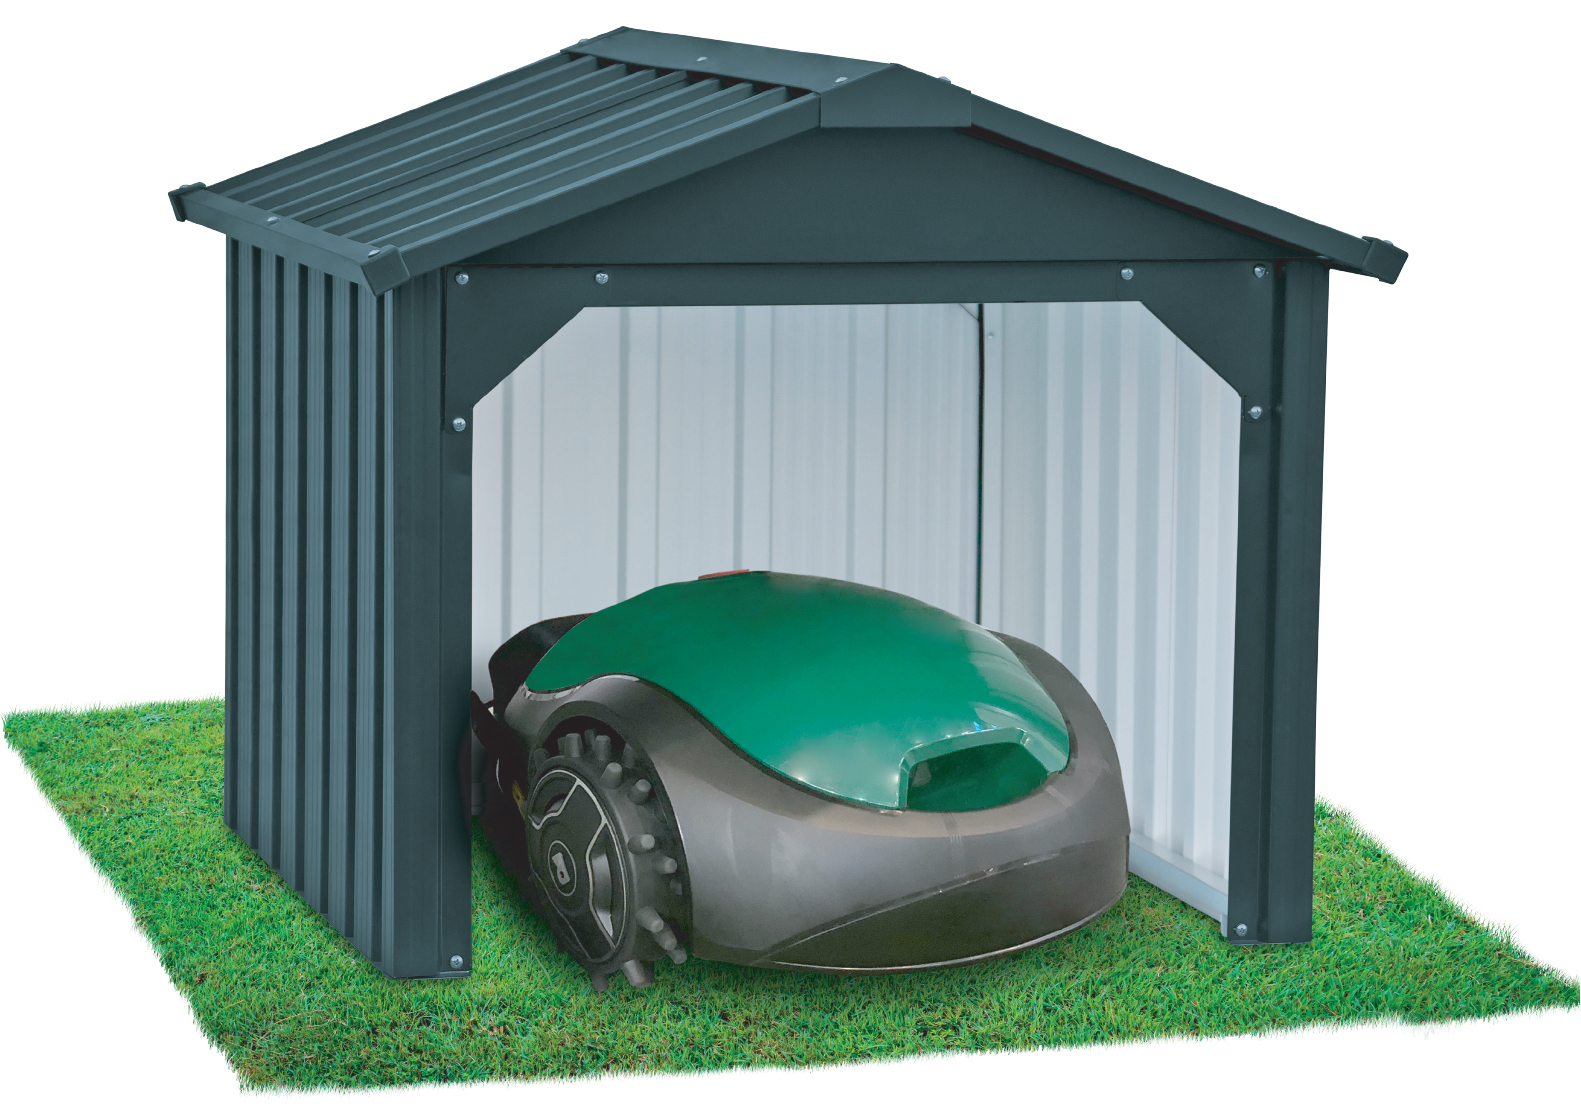 Robotic Lawn Mower Shed